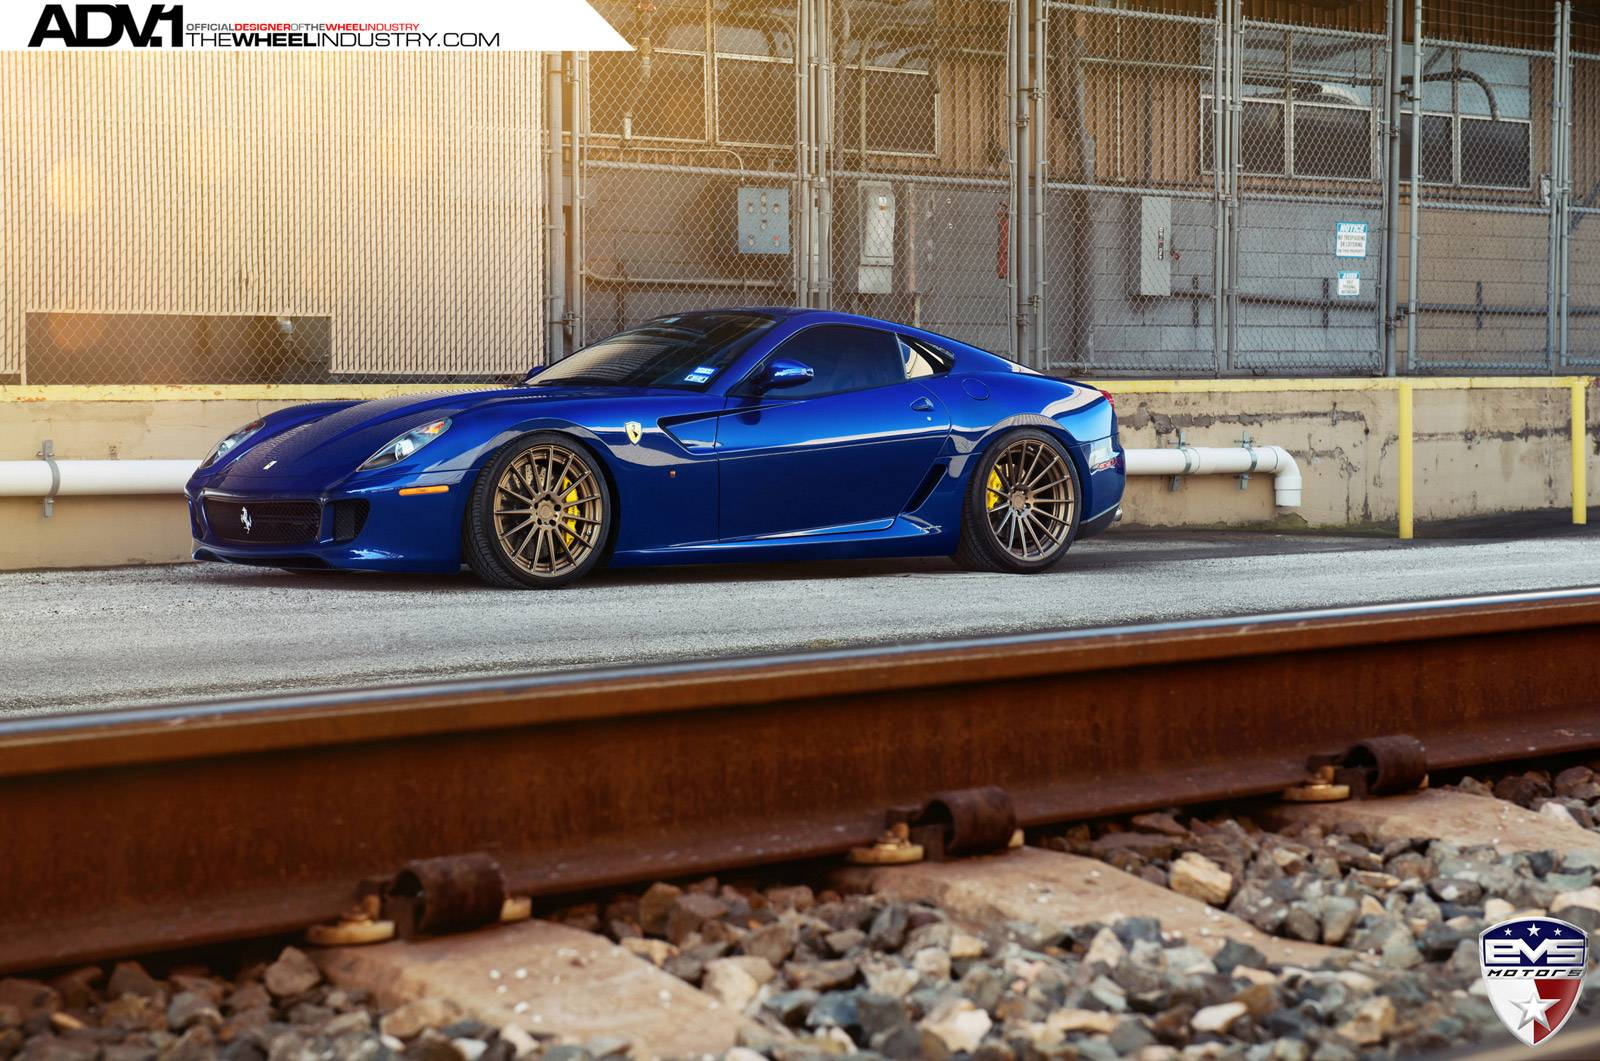 Rare Blue Ferrari 599 Gtb On Bronze Adv 1 Wheels Is Impeccible Gtspirit